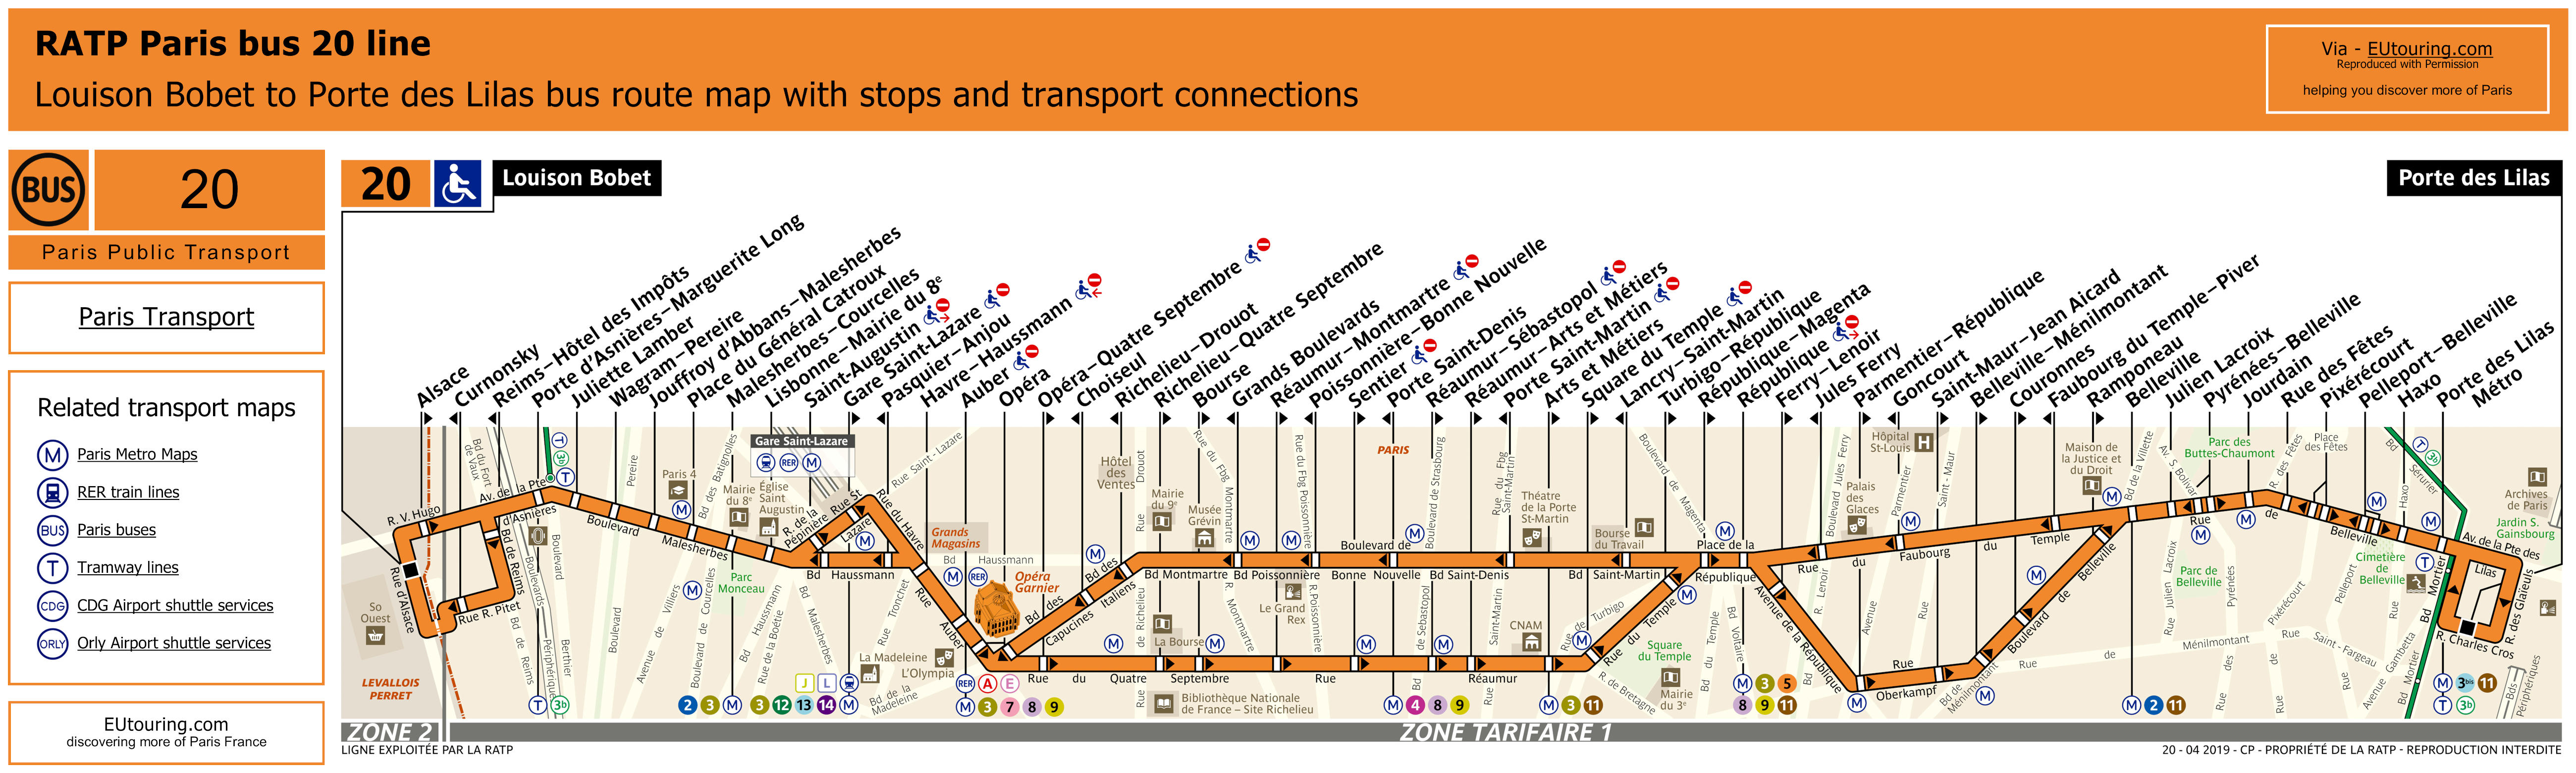 Download Paris bus route maps with stops, connections and street plan for your mobile device or PC in PDF format or as an image file with over 12,000 bus stops, updated 2019.